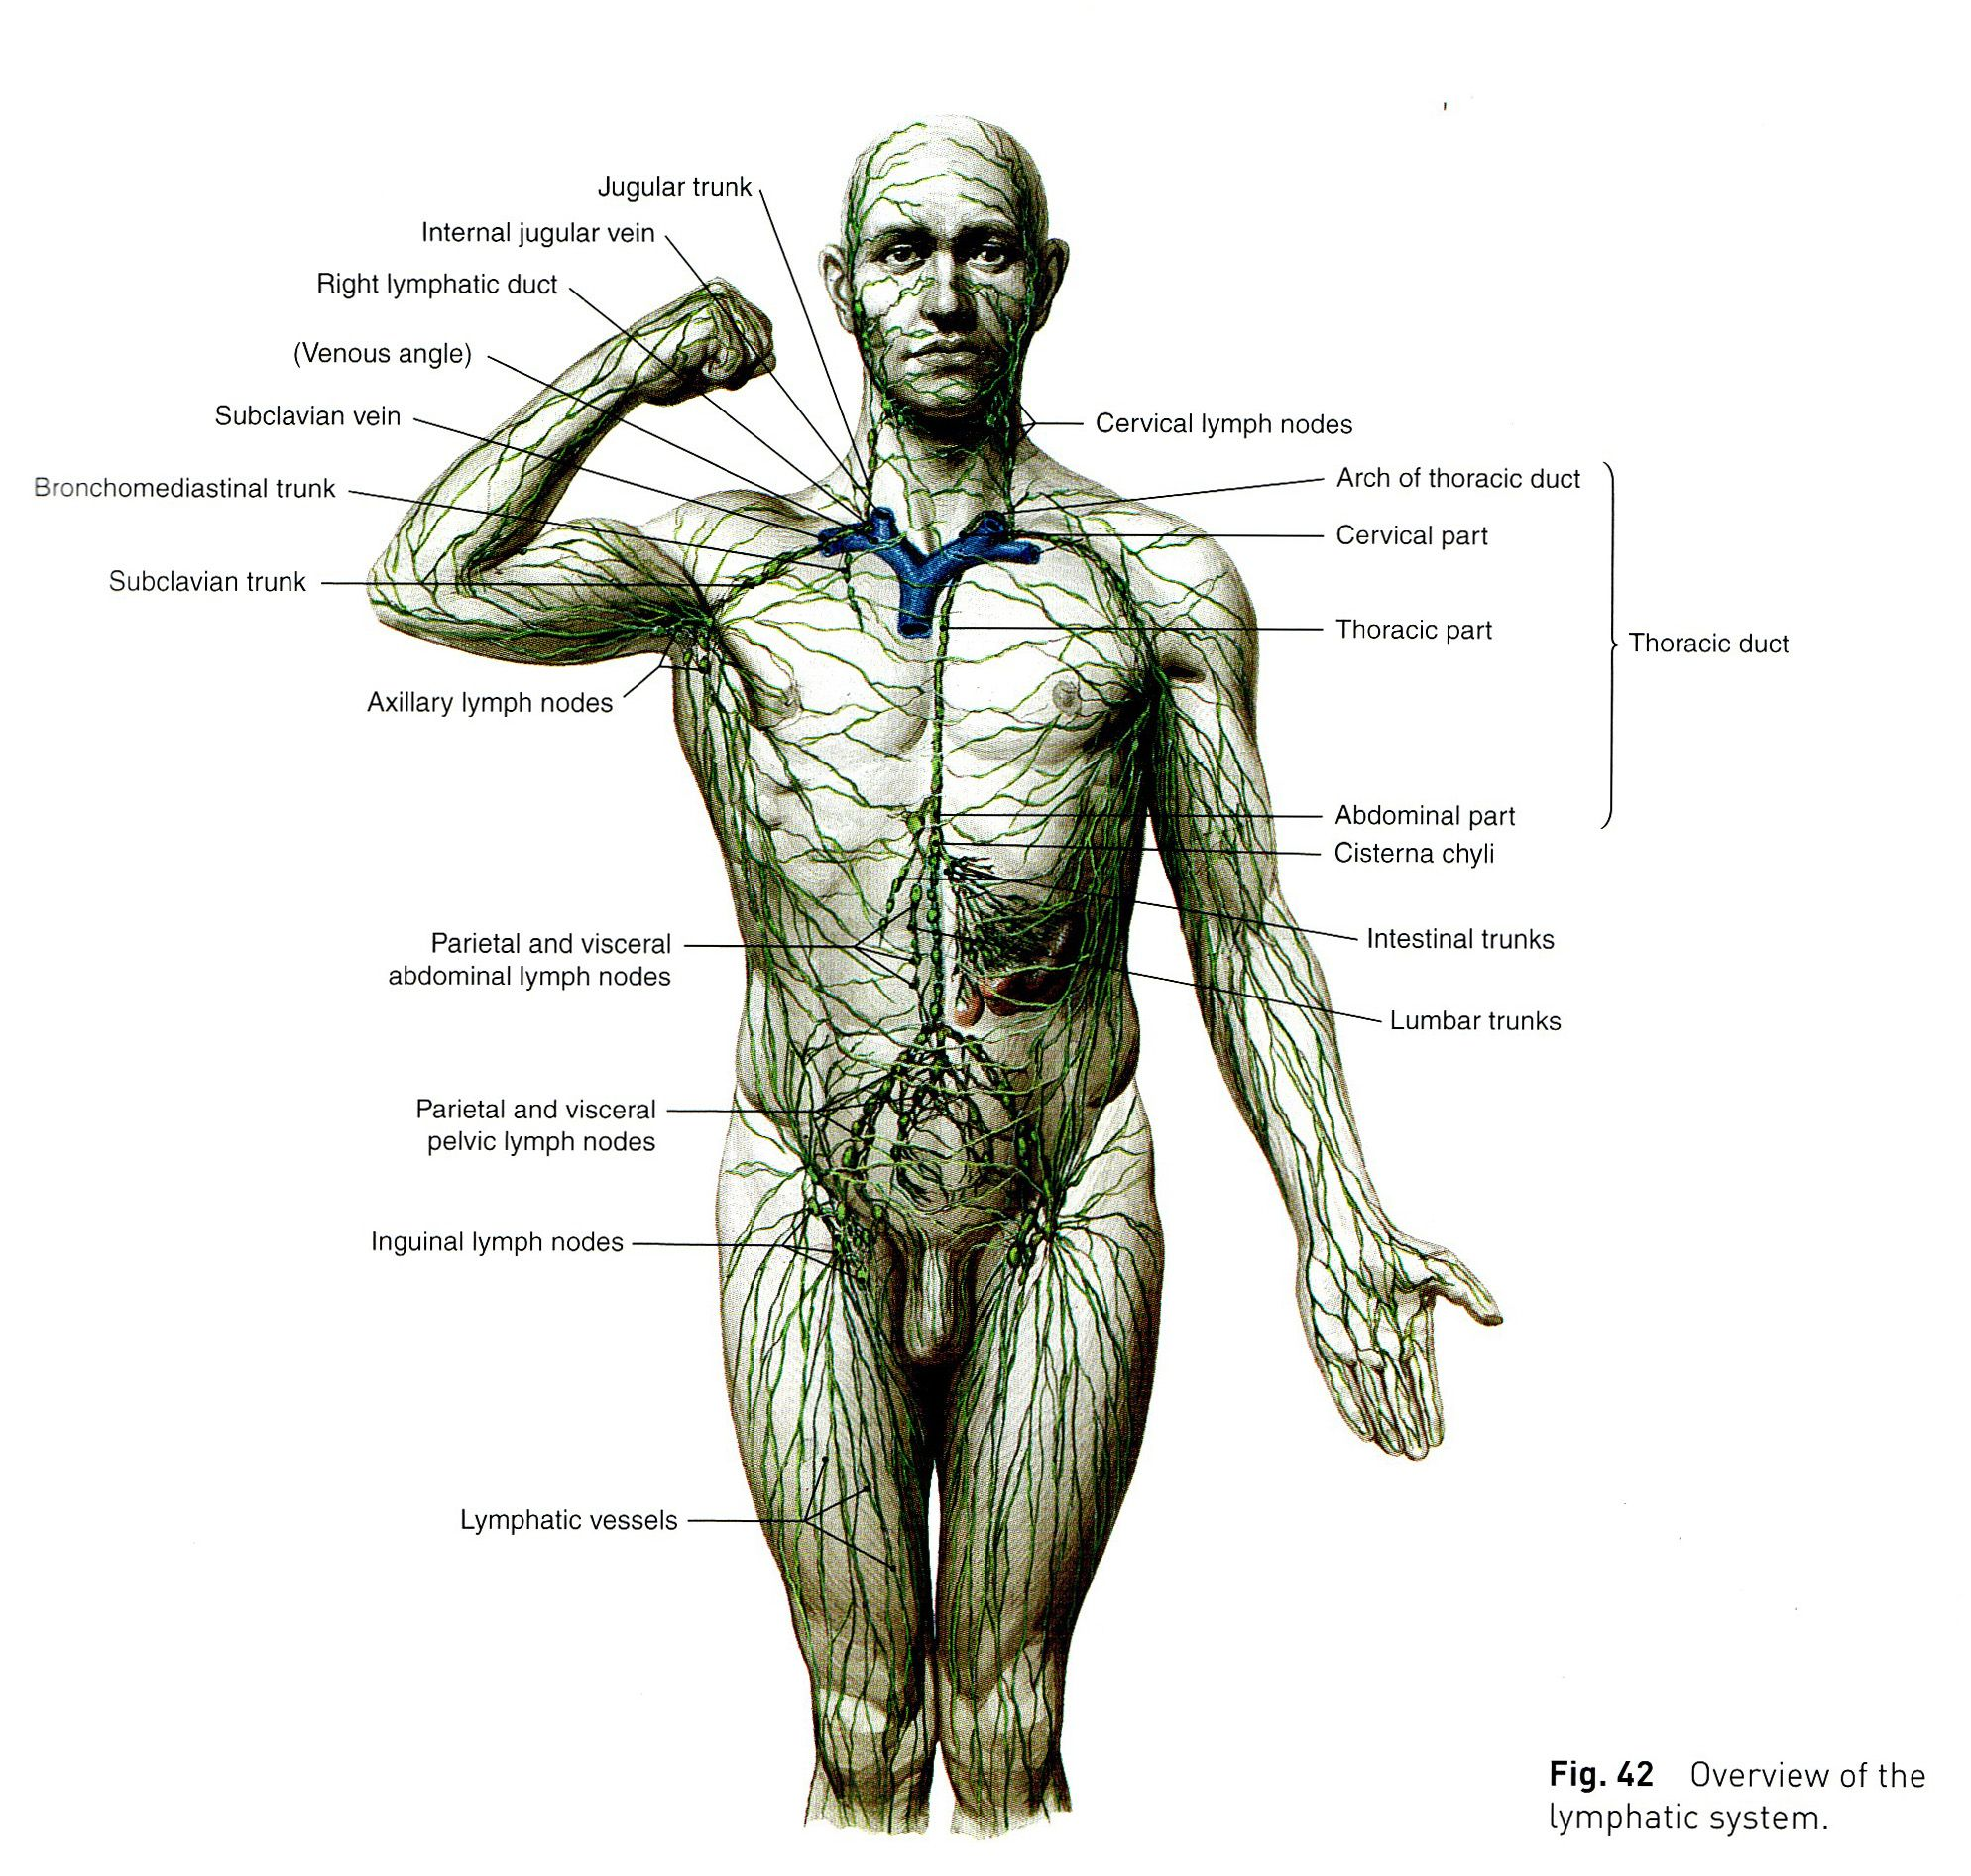 lymphatic system diagram - Google Search | THE HUMAN BODY ...